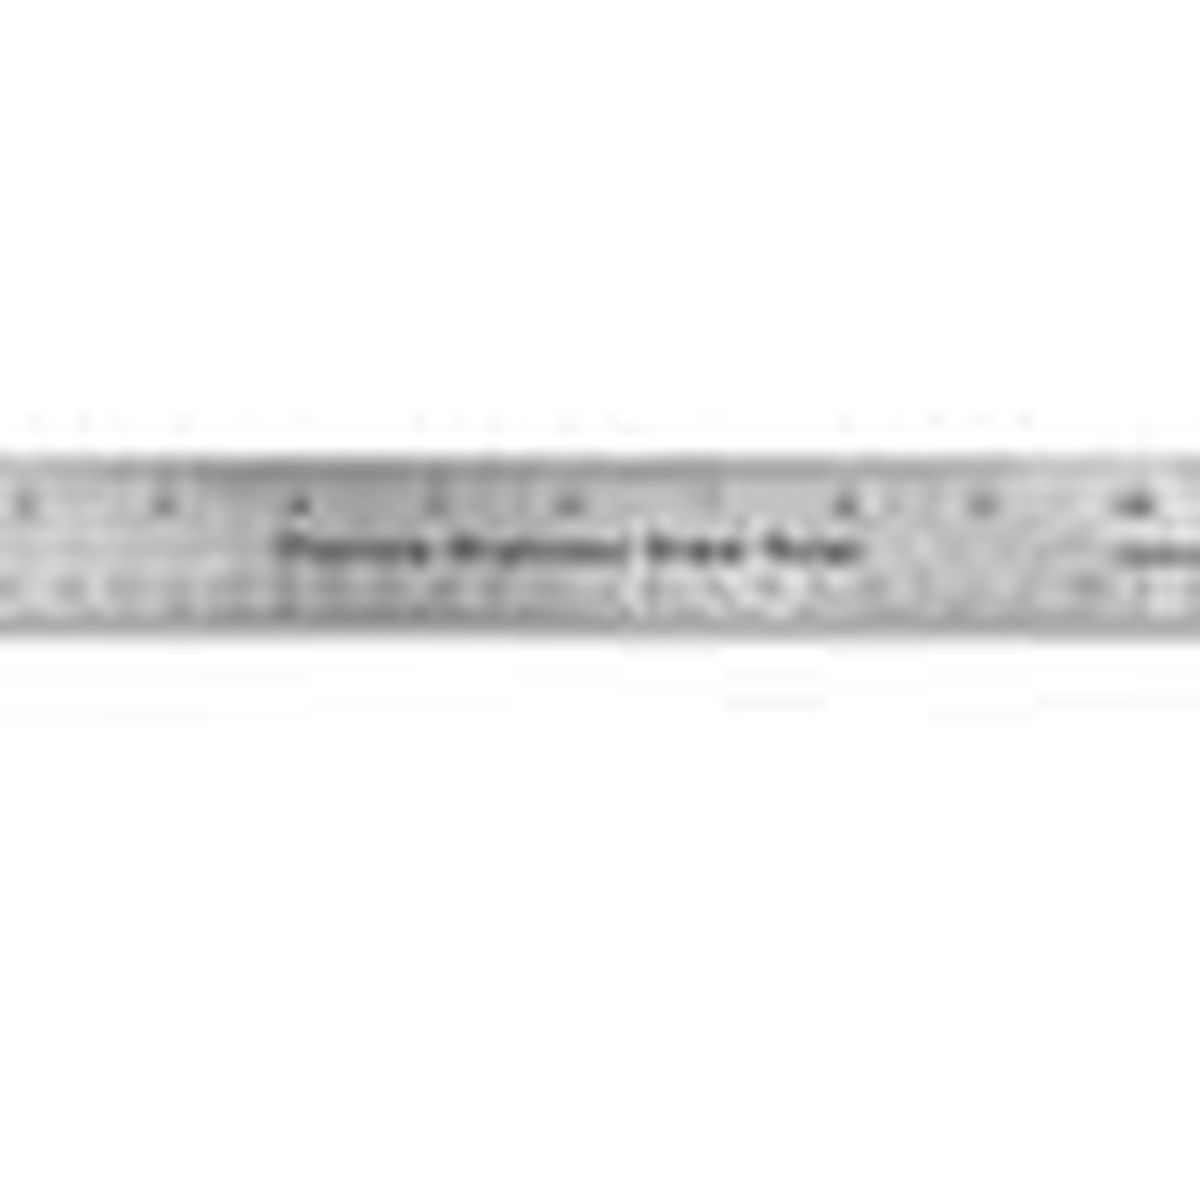 12-inch stainless steel ruler